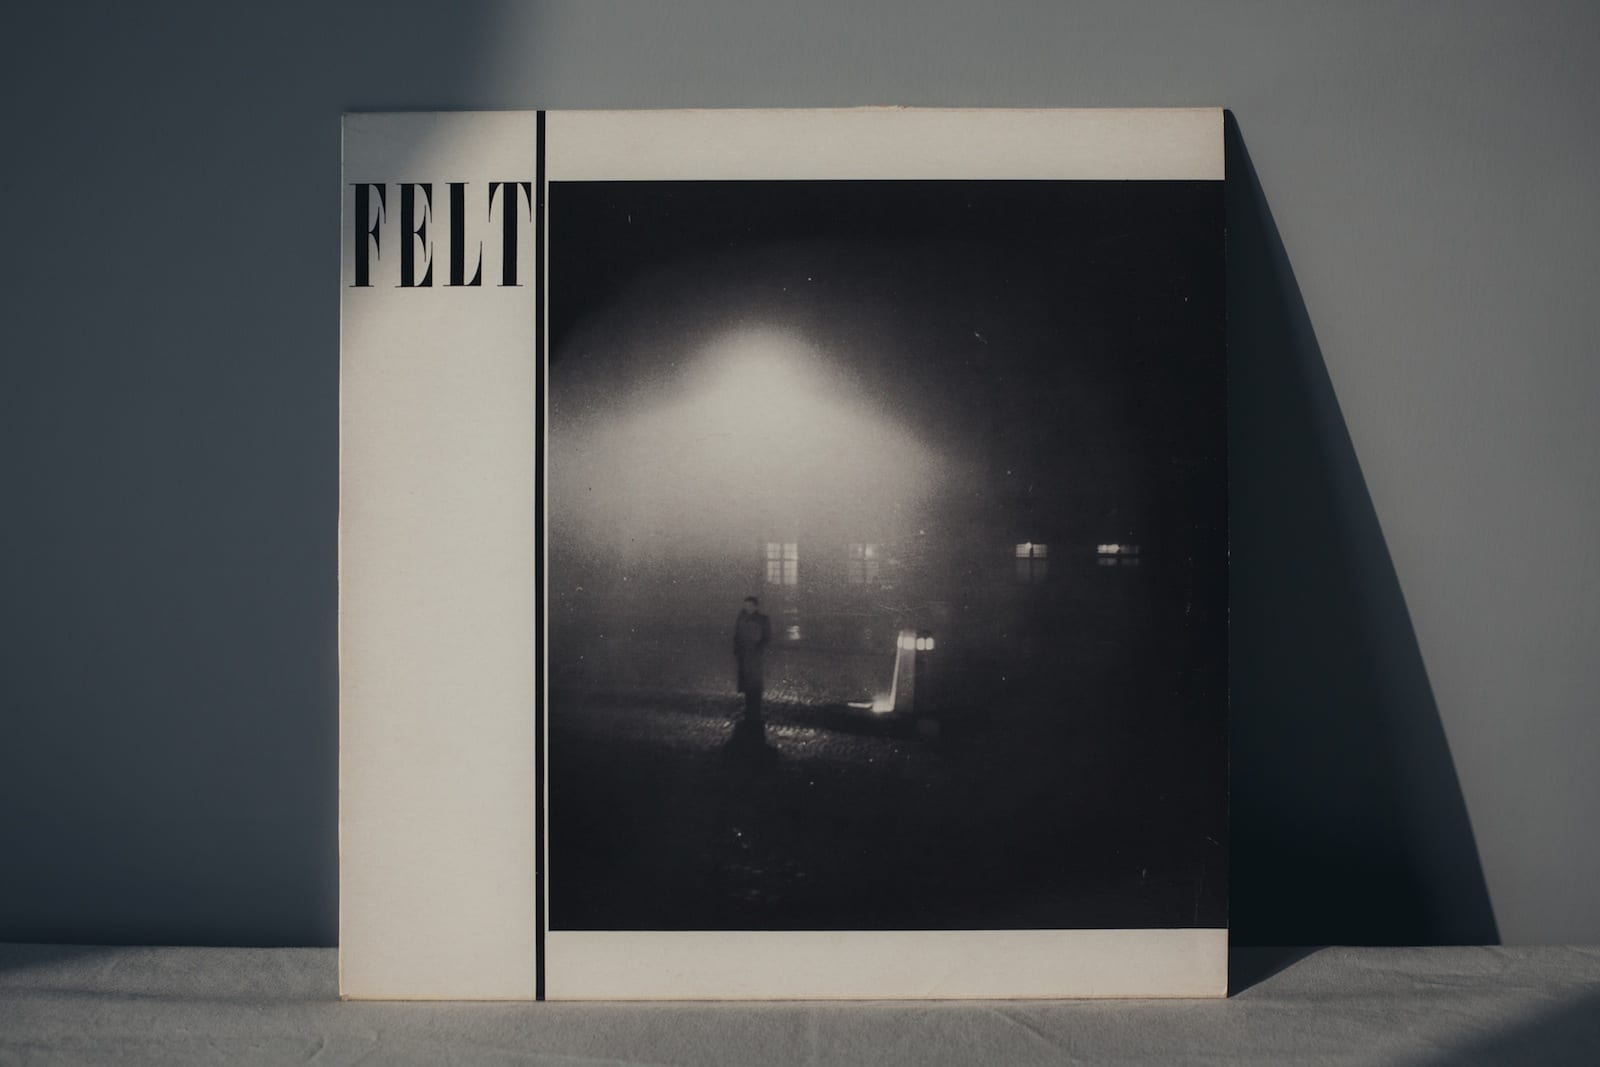 Felt - My Face is On Fire